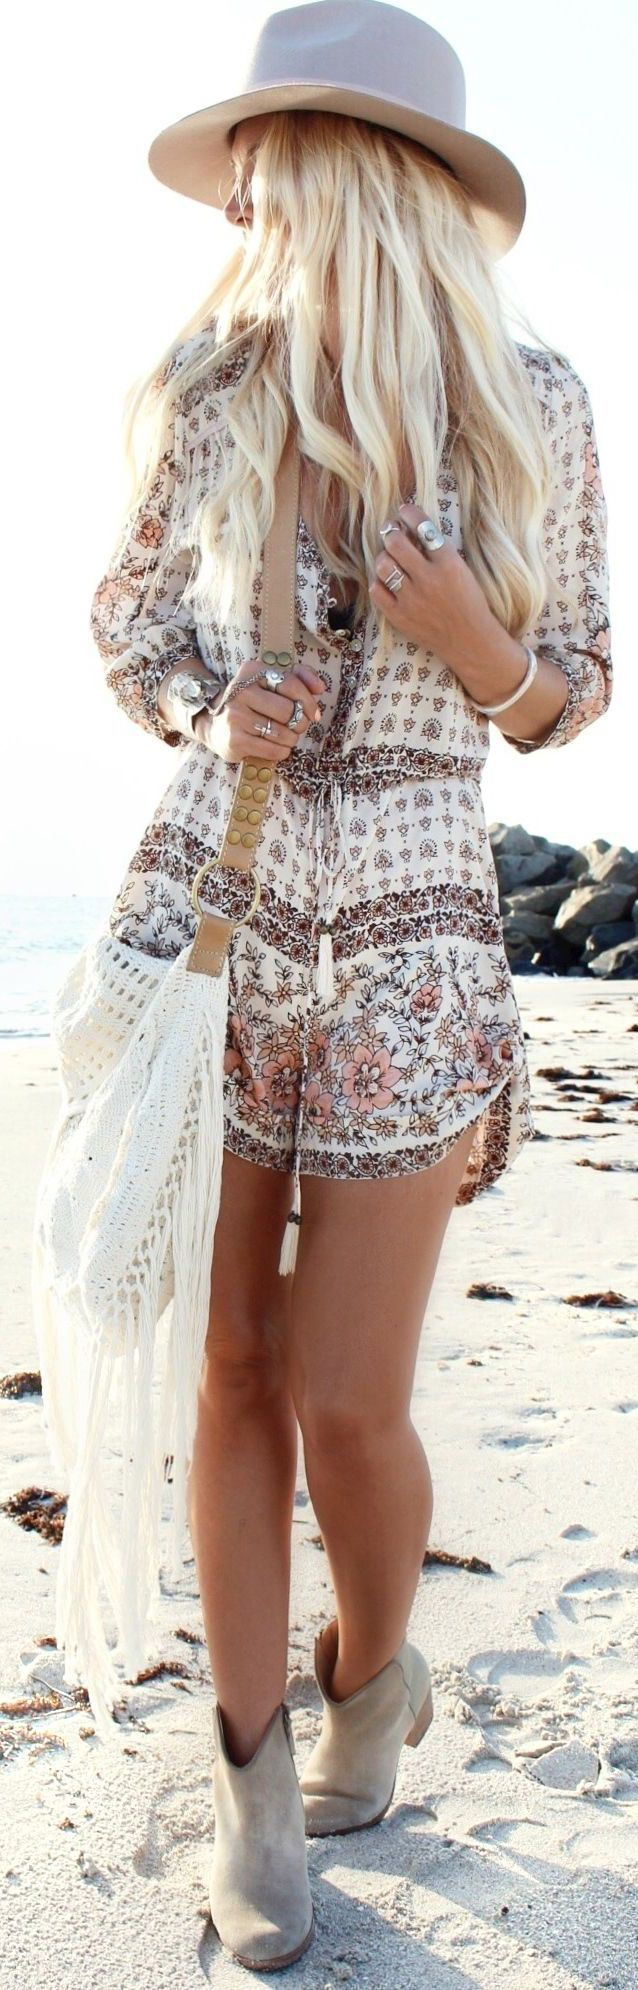 Coachella festival style edit playsuits romantic and boho romper